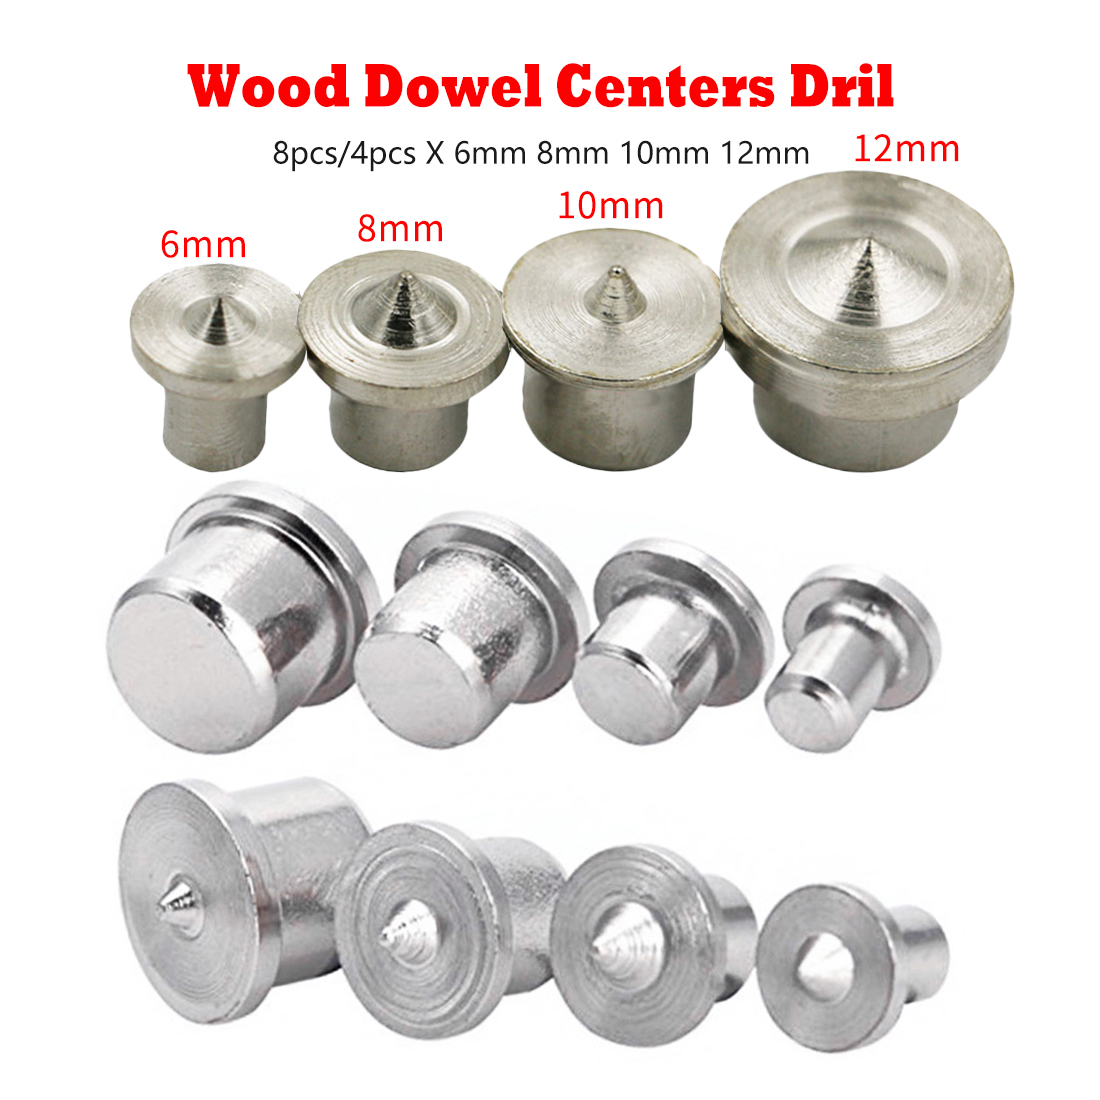 8pcs/4pcs Solid Wood Dowel Locator Center Points Pin Dowel Drill Bit For Woodworking 4mm 6mm 8mm 12mm Wood Drill